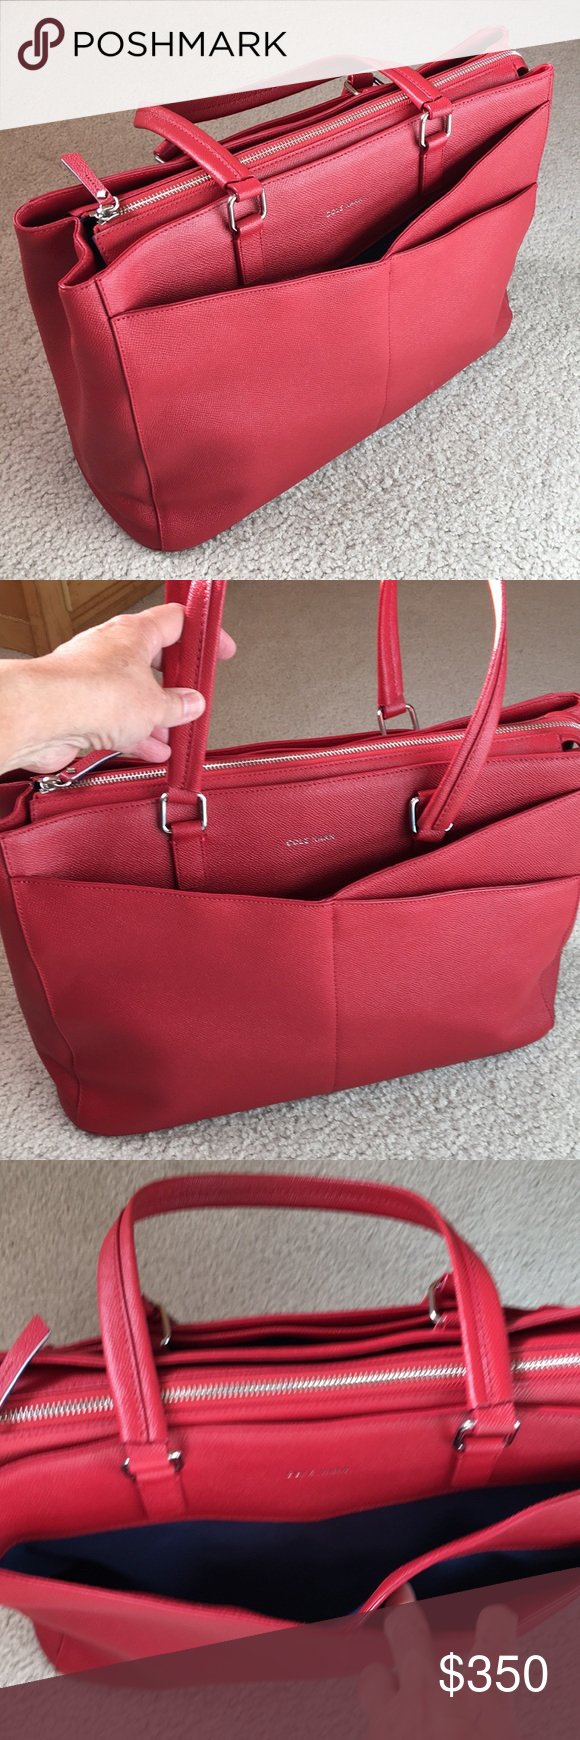 12185af8465 NWT COLE HAAN Large Red Tote/American Airline RARE When American Airline  merged with US